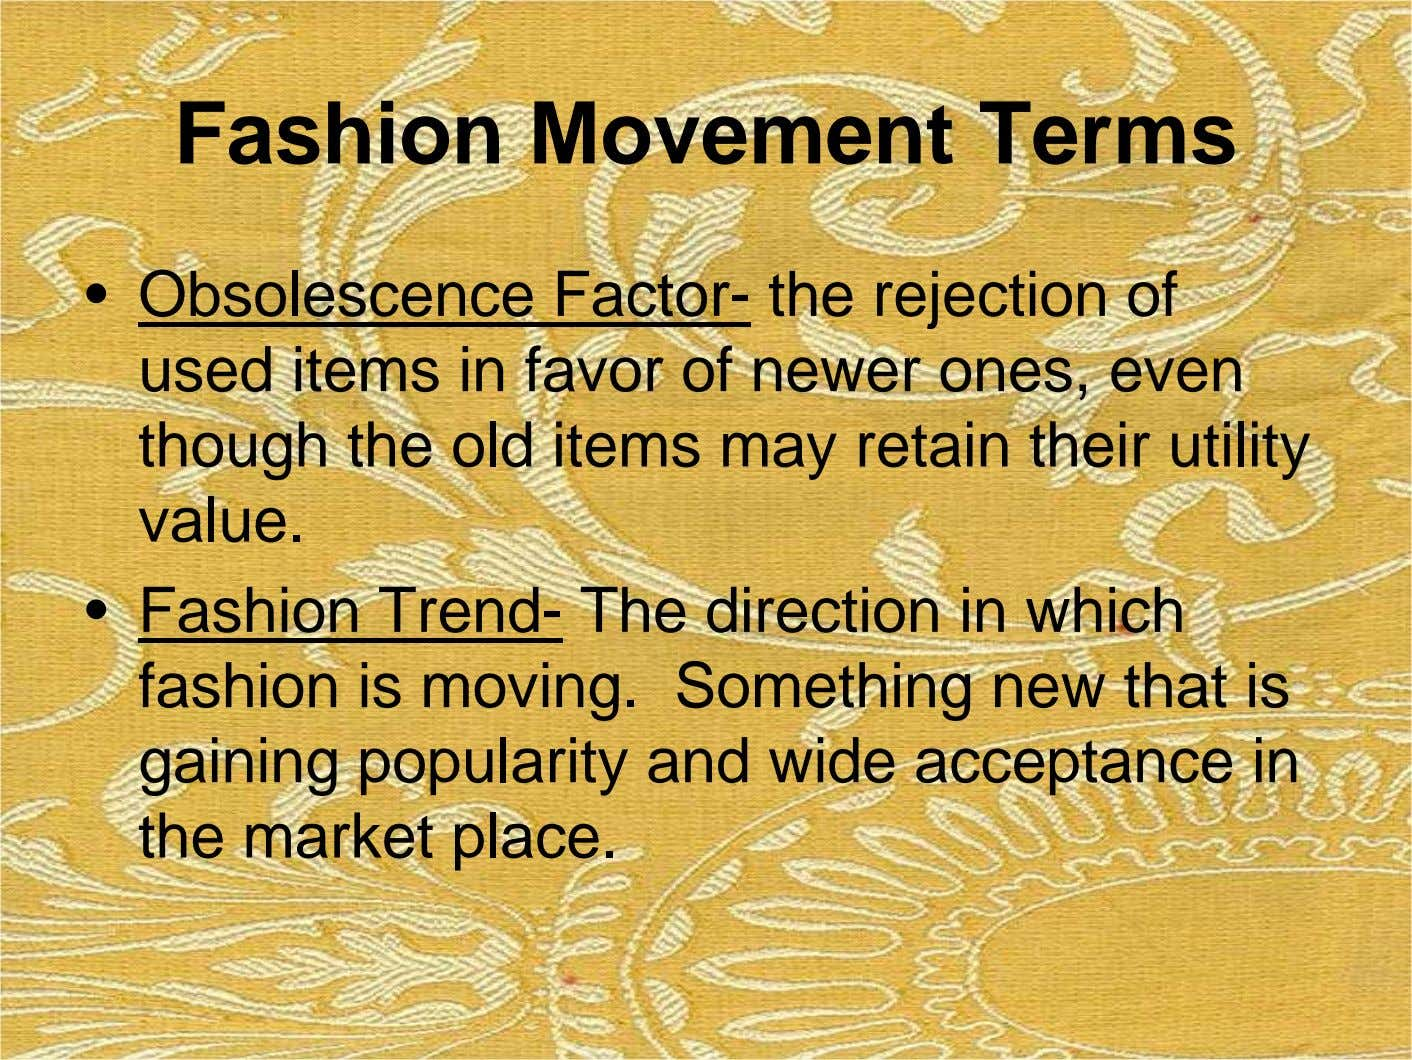 Fashion Movement Terms • Obsolescence Factor- the rejection of used items in favor of newer